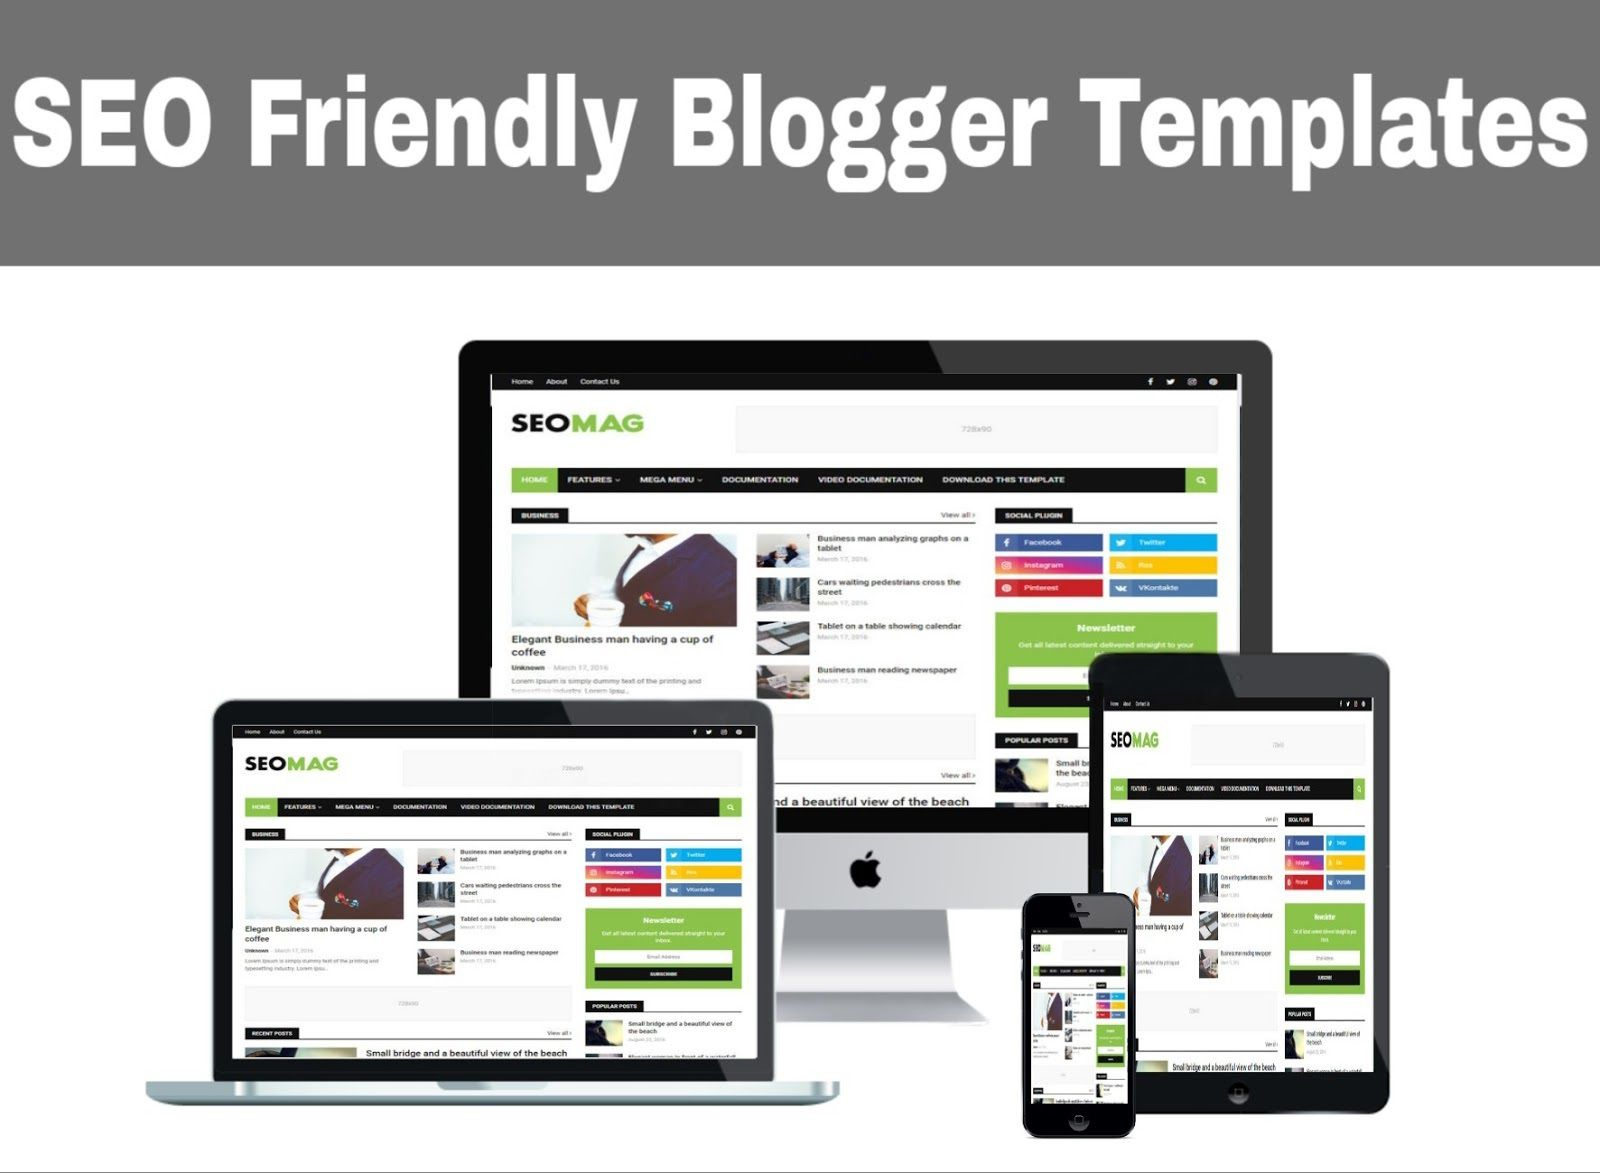 002 Imposing Free Responsive Seo Friendly Blogger Template Picture Full